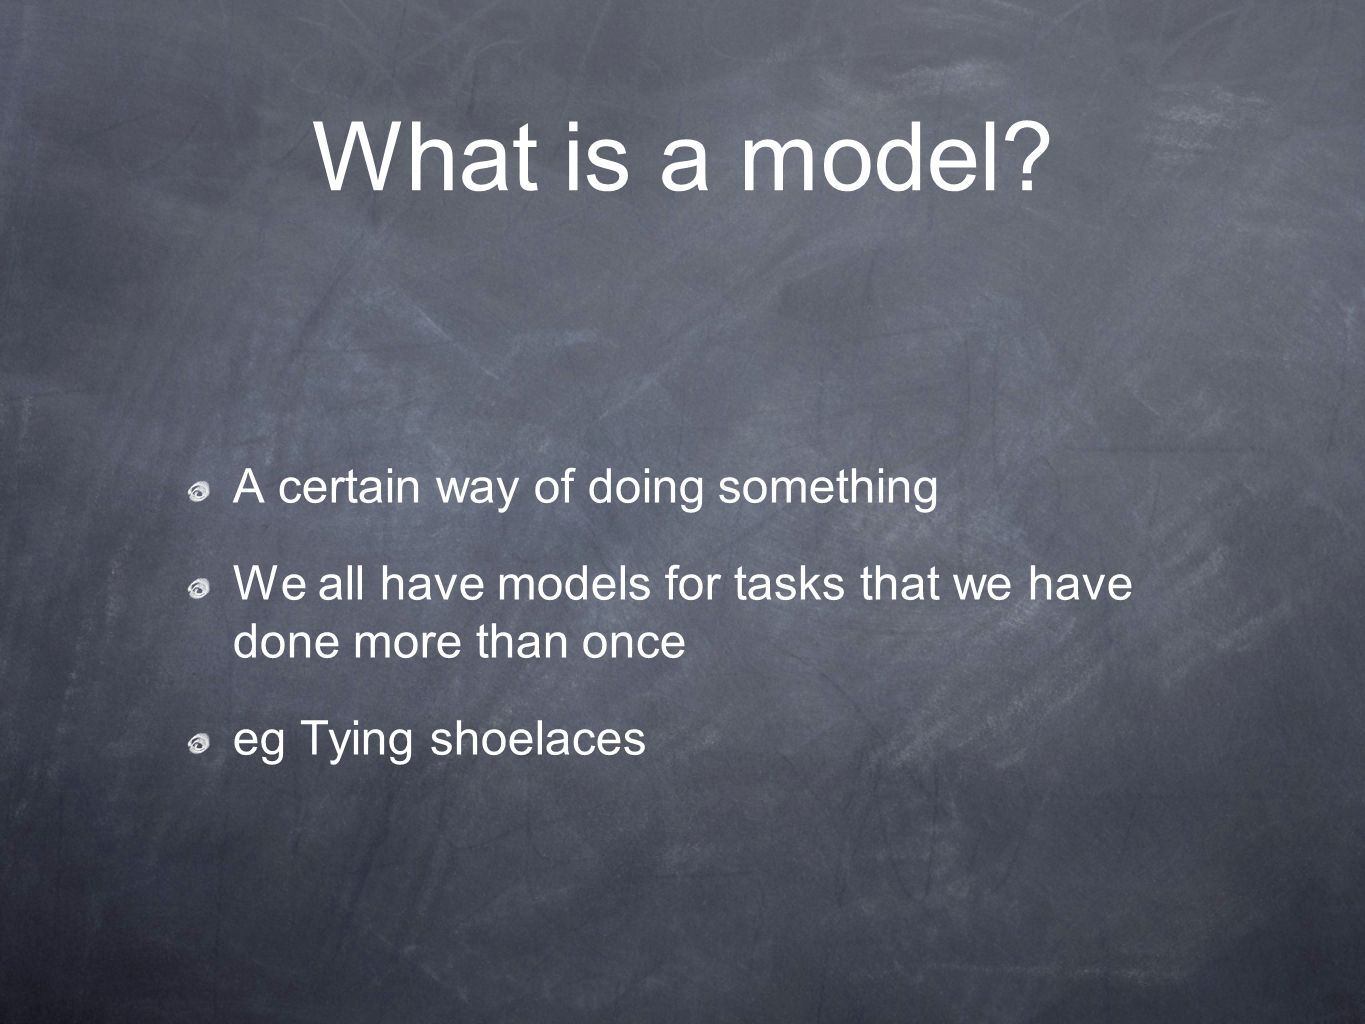 What is a model? A certain way of doing something We all have models for tasks that we have done more than once eg Tying shoelaces